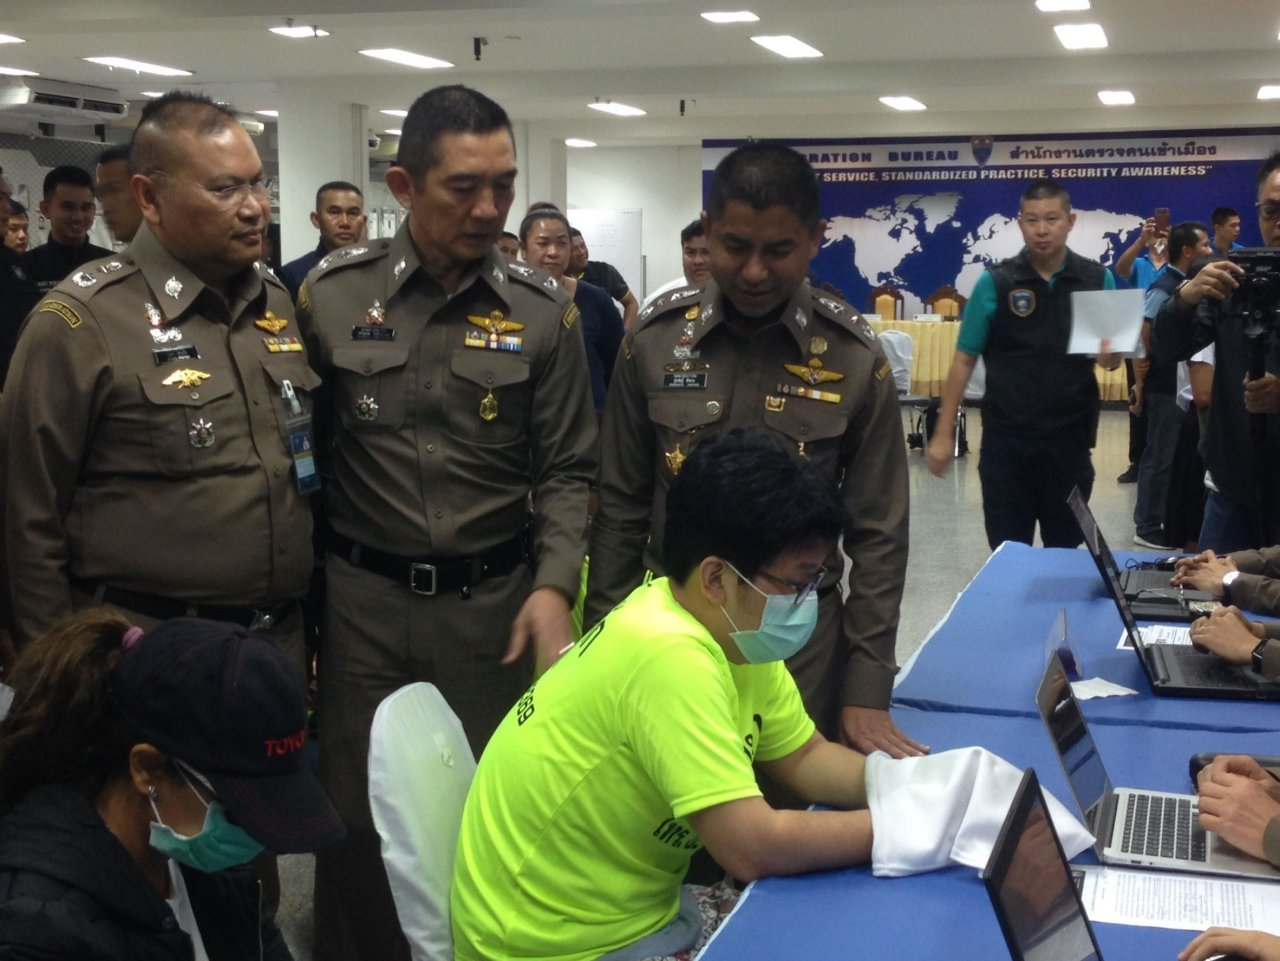 S Korean arrested in Bangkok over fake lottery website. A South Korean man has been arrested in Bangkok on Wednesday following an arrest